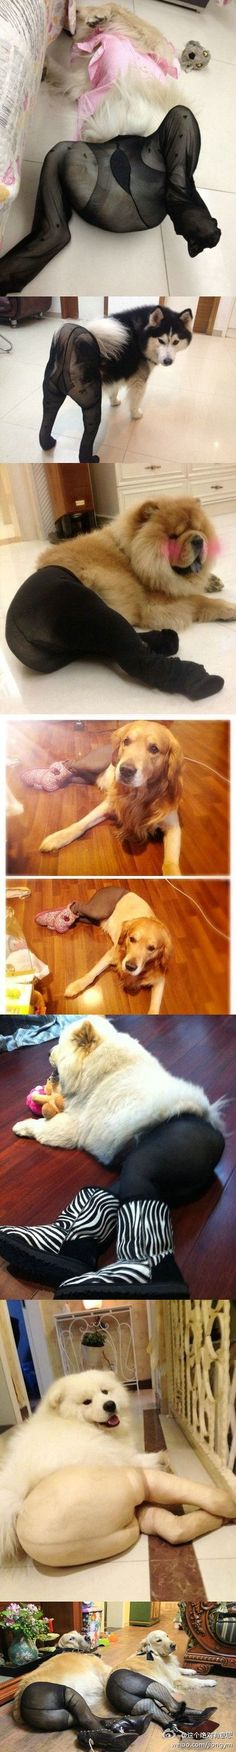 Such a tease... #funny #dogs #cute #lingerie #dogs dress up #high heels #cute #omg #adorabo